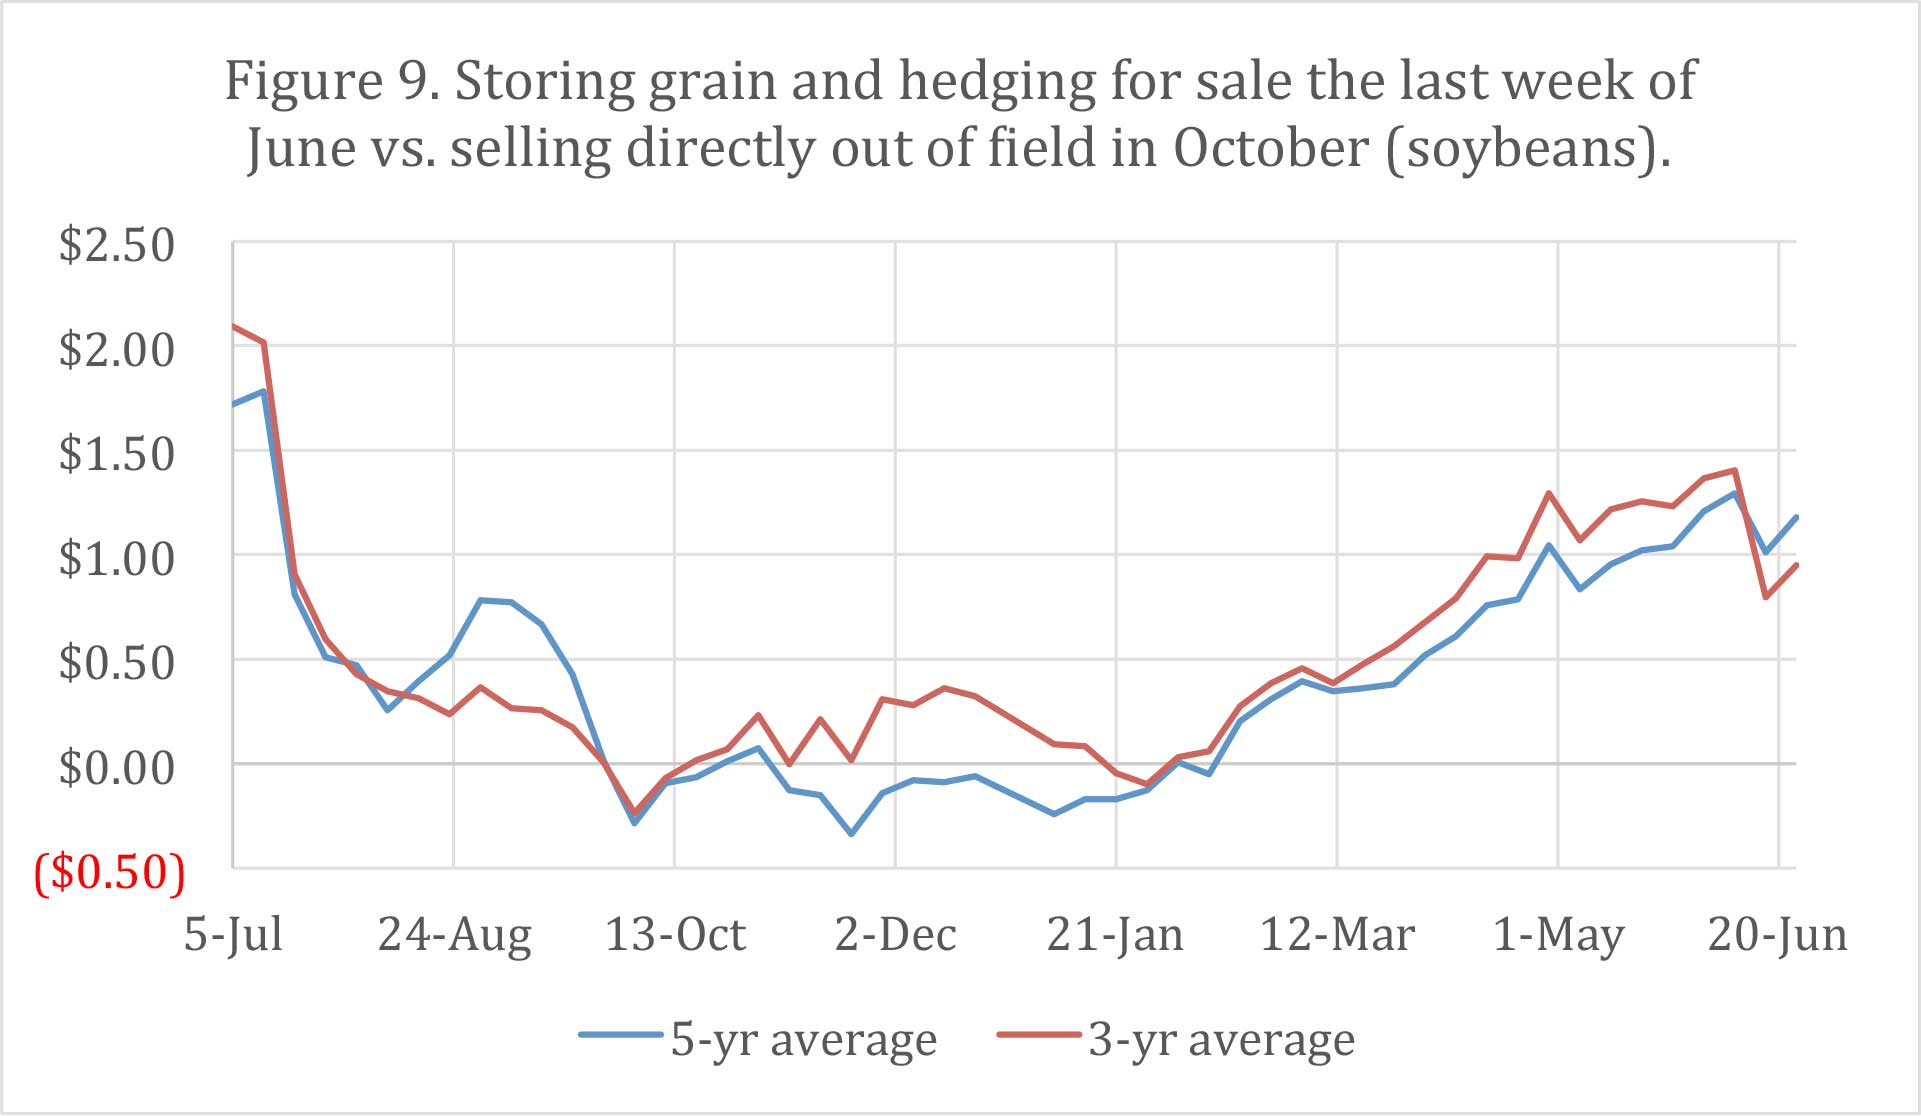 Figure 9. Storing grain and hedging for sale the last week of June vs. selling directly out of Hield in October (soybeans).